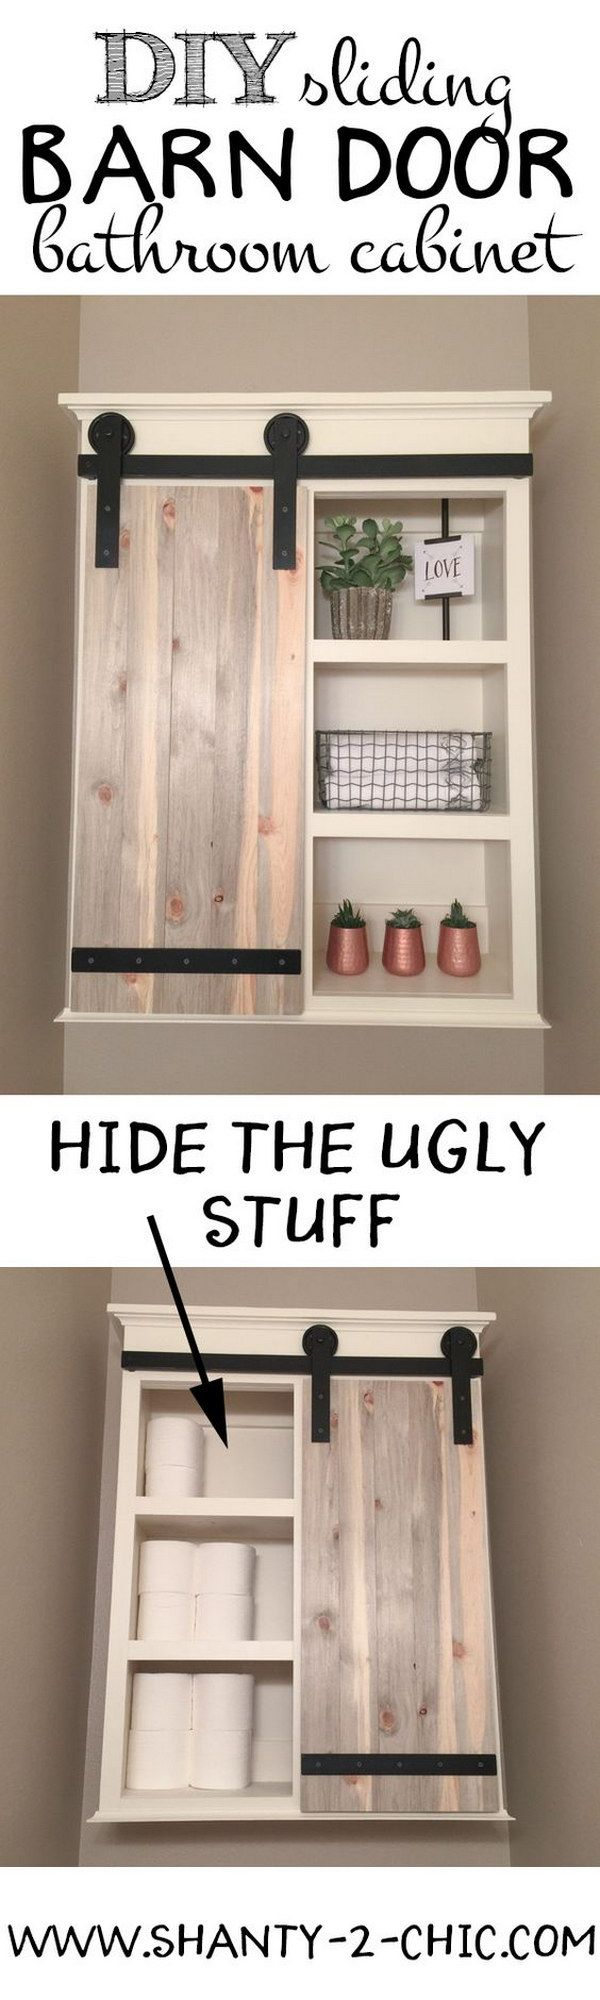 43 Over The Toilet Storage Ideas For Extra Space | Ideas for the ...